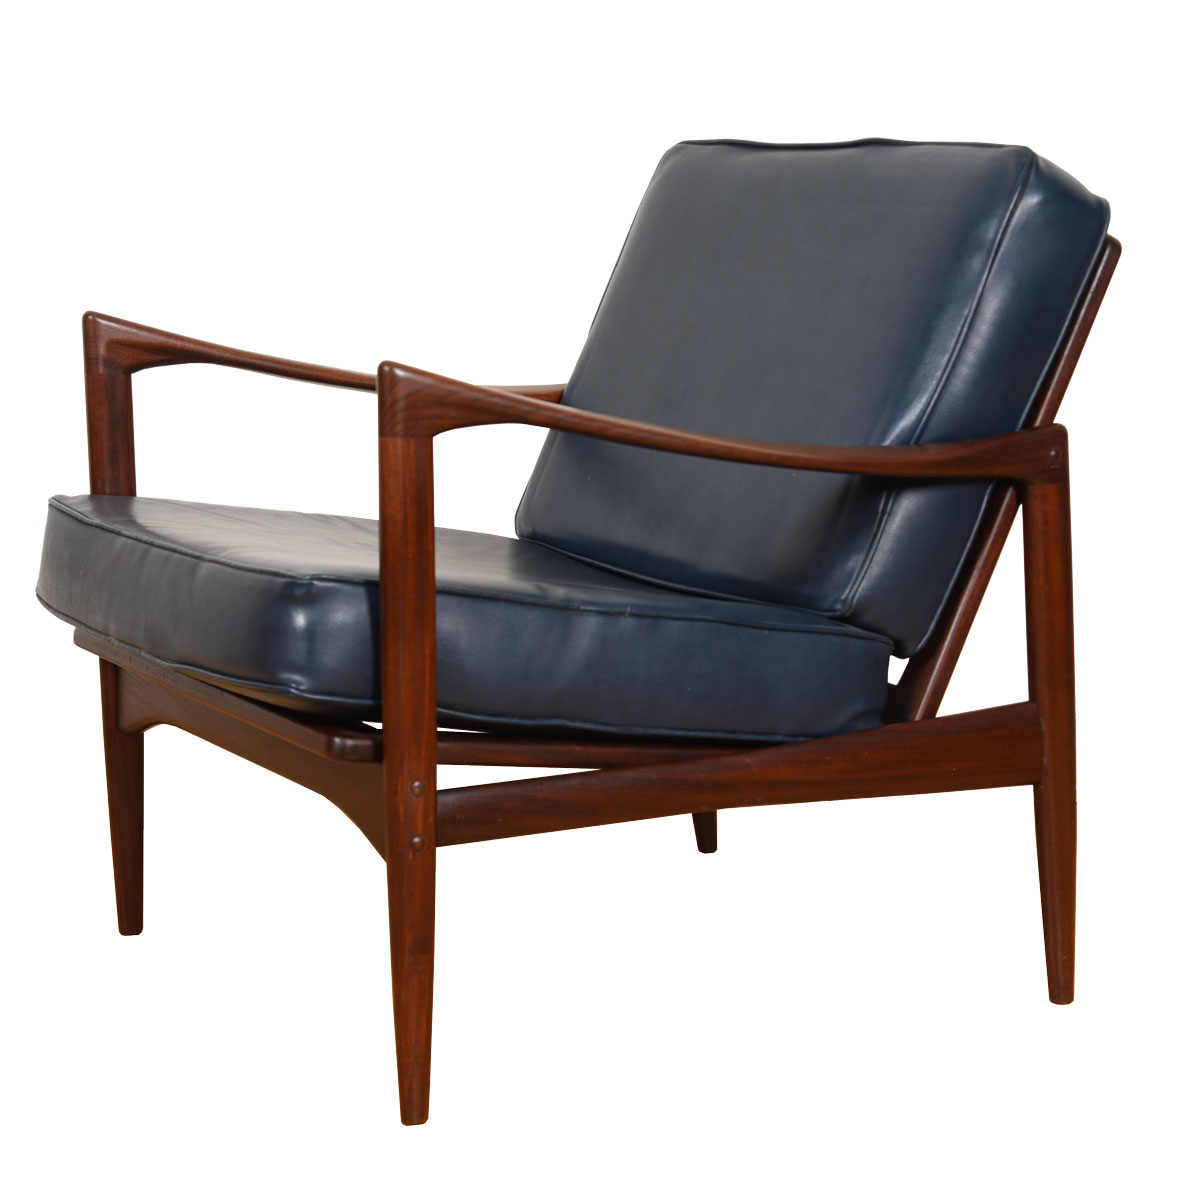 The Swedish 'Candidate' Chair by Danish Legend, Ib Kofod Larsen